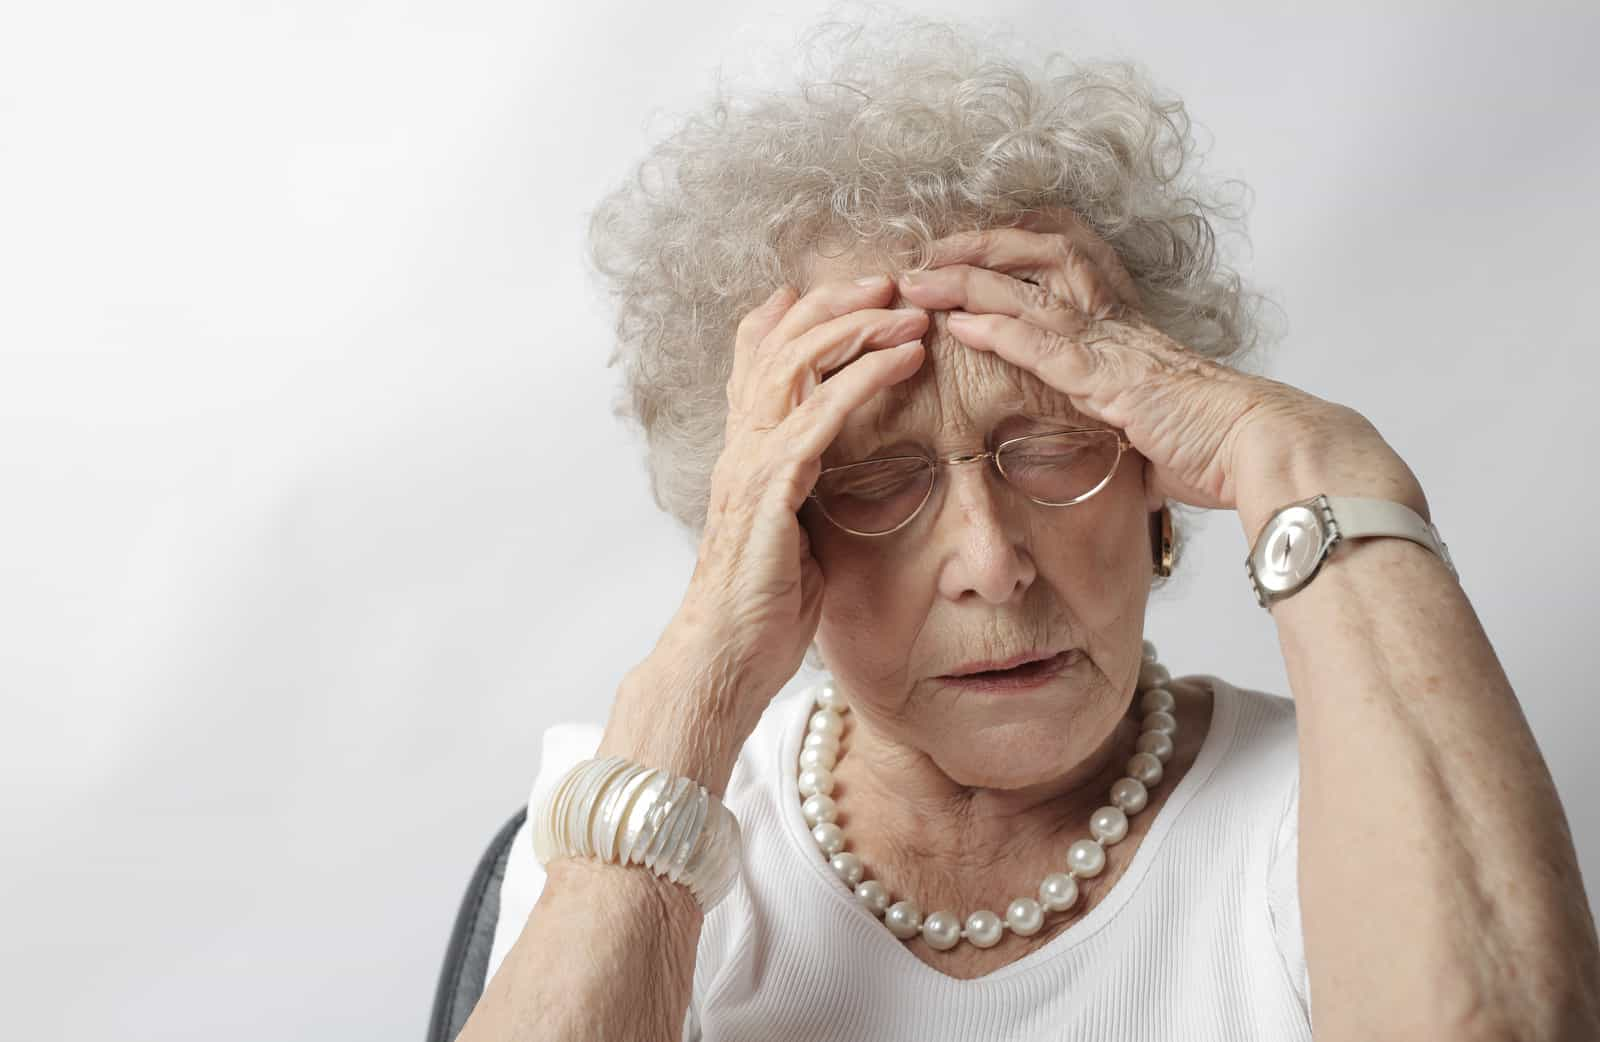 woman with headache holding her head wearing white top